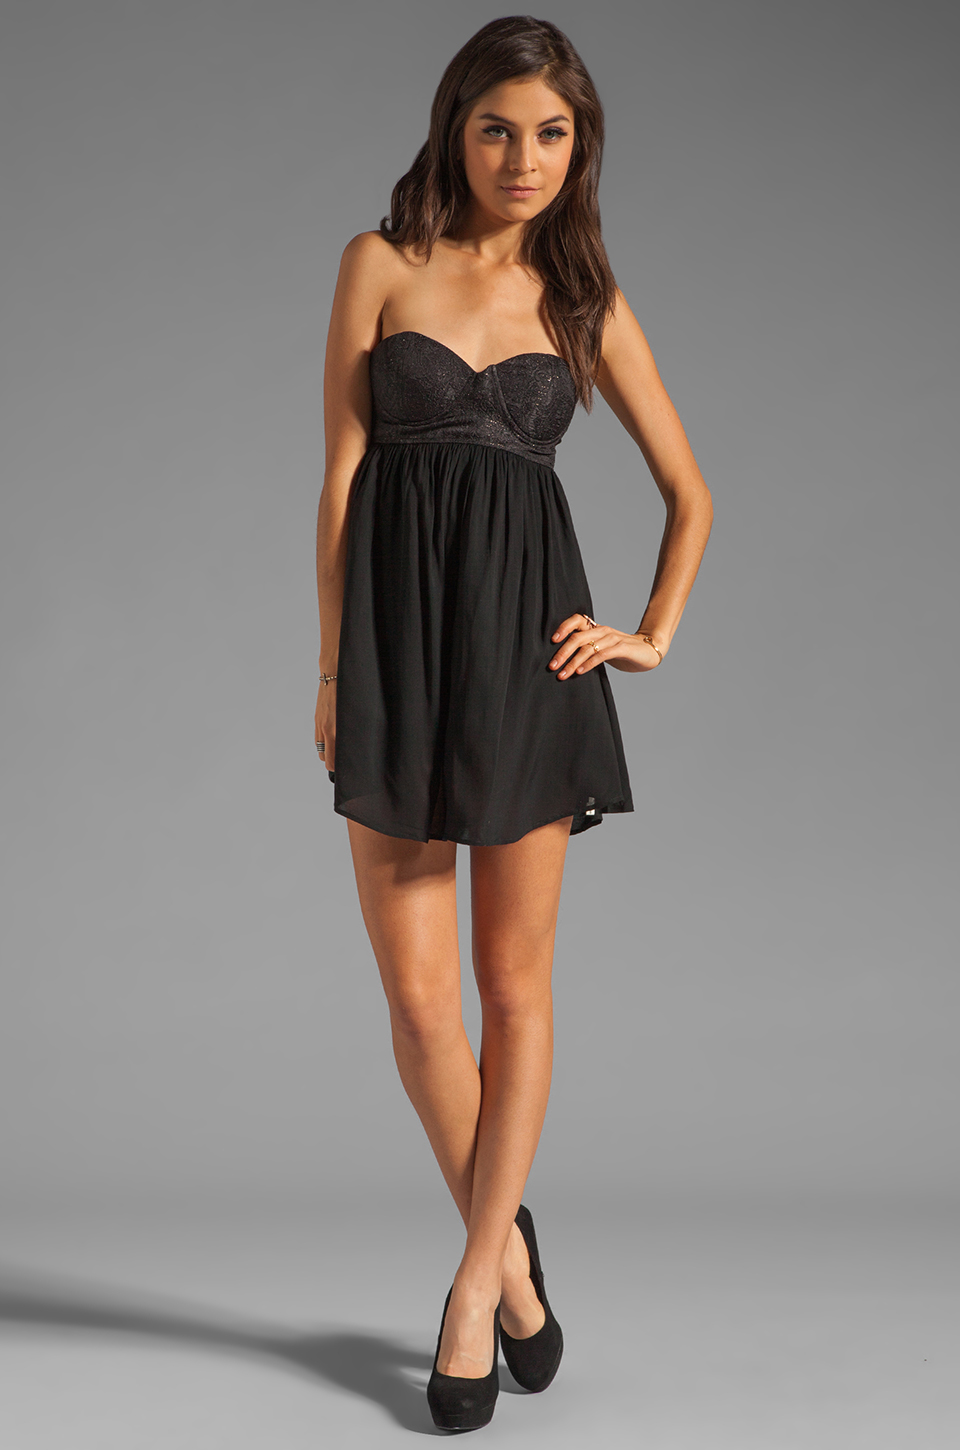 One Teaspoon Nickels and Dimes Sequin Bustier Mini Dress in Black